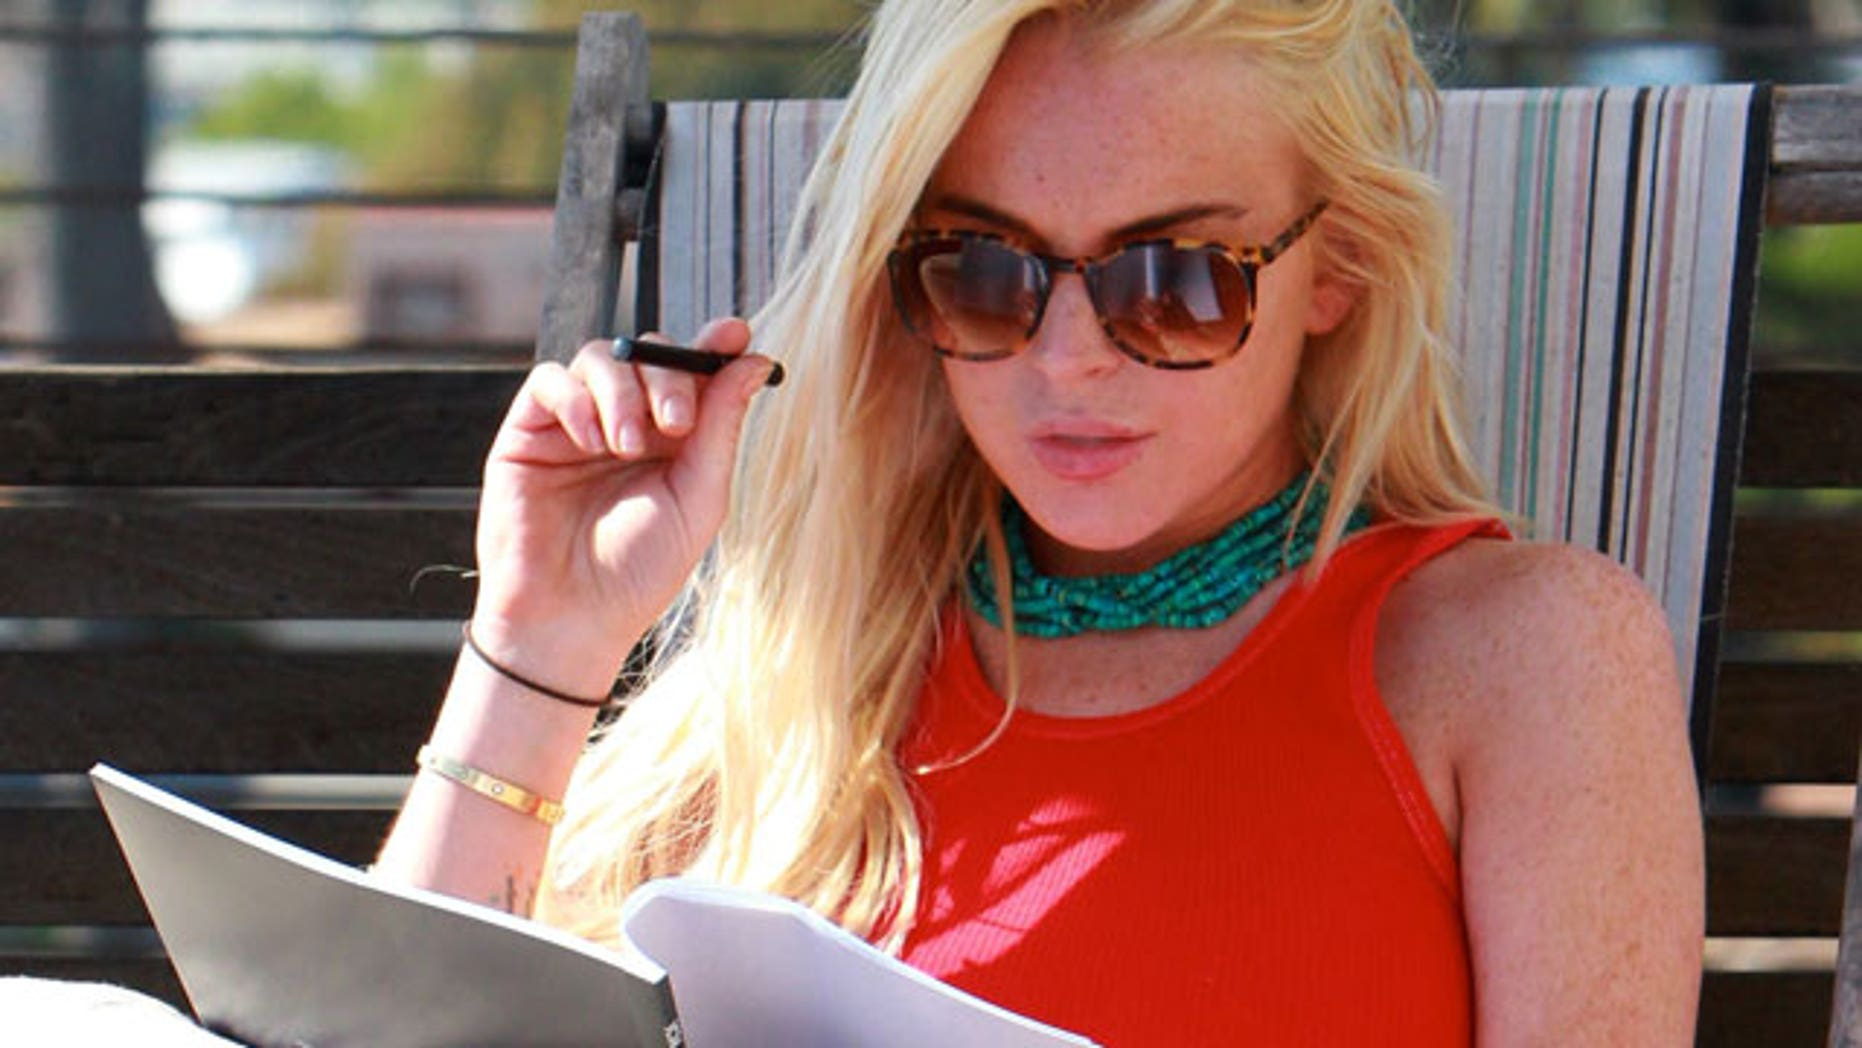 Lindsay Lohan reads scripts while serving out her house arrest sentencing. (X17 Online)